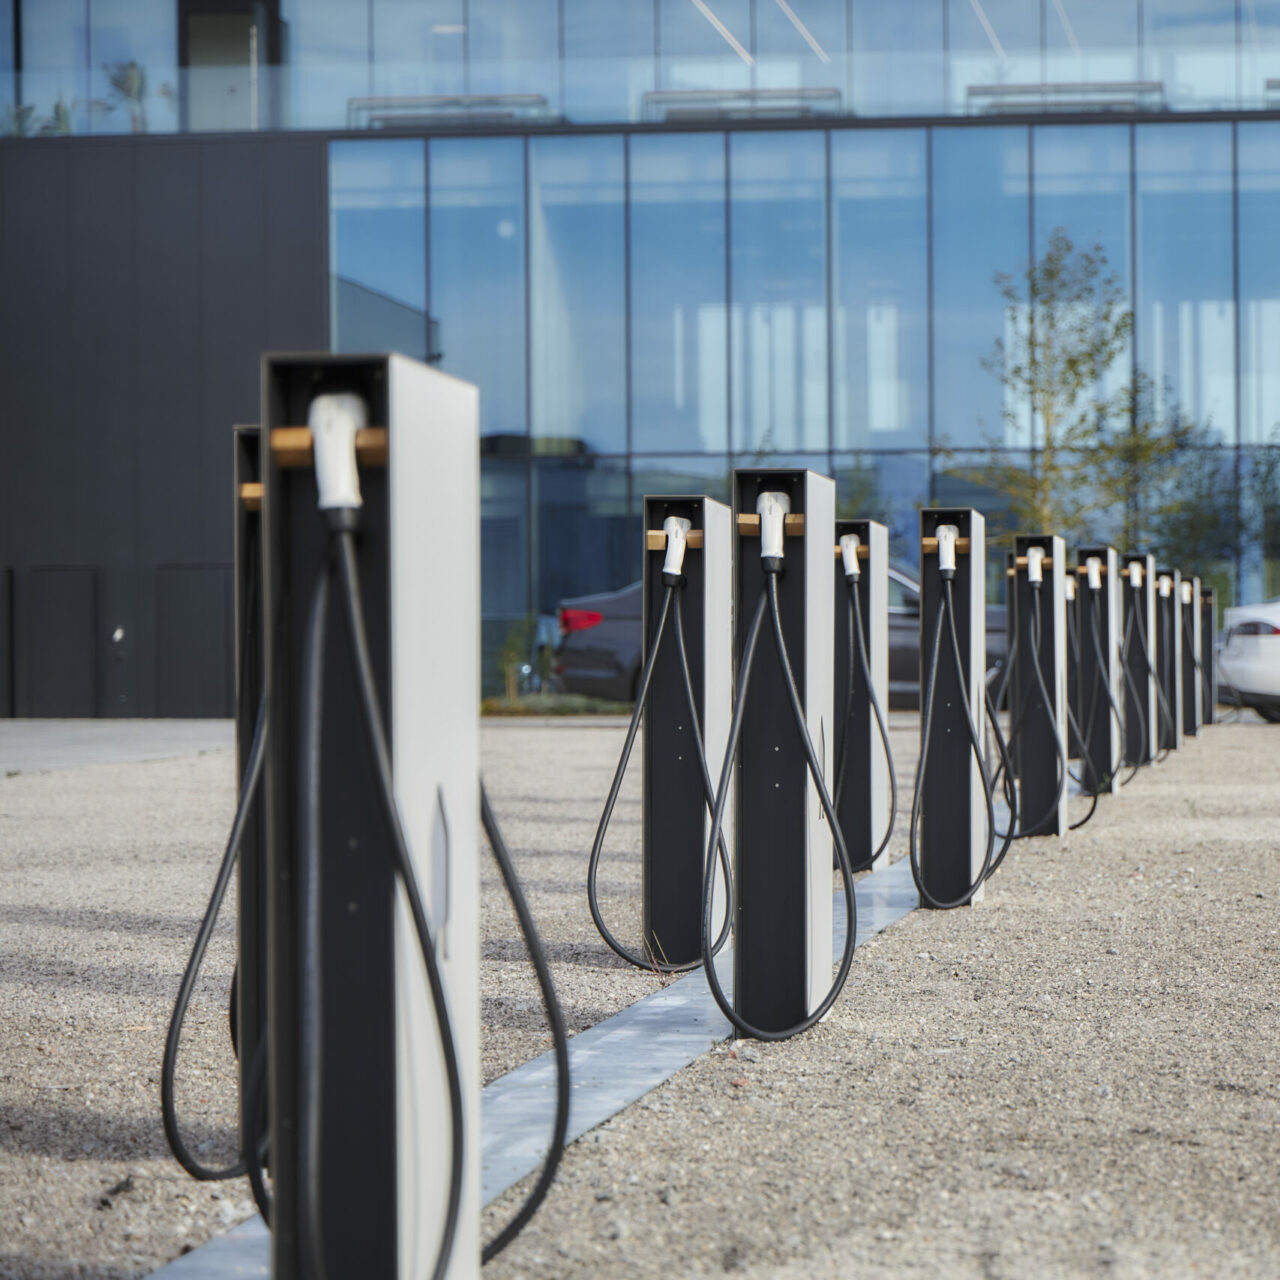 Electric charging car park